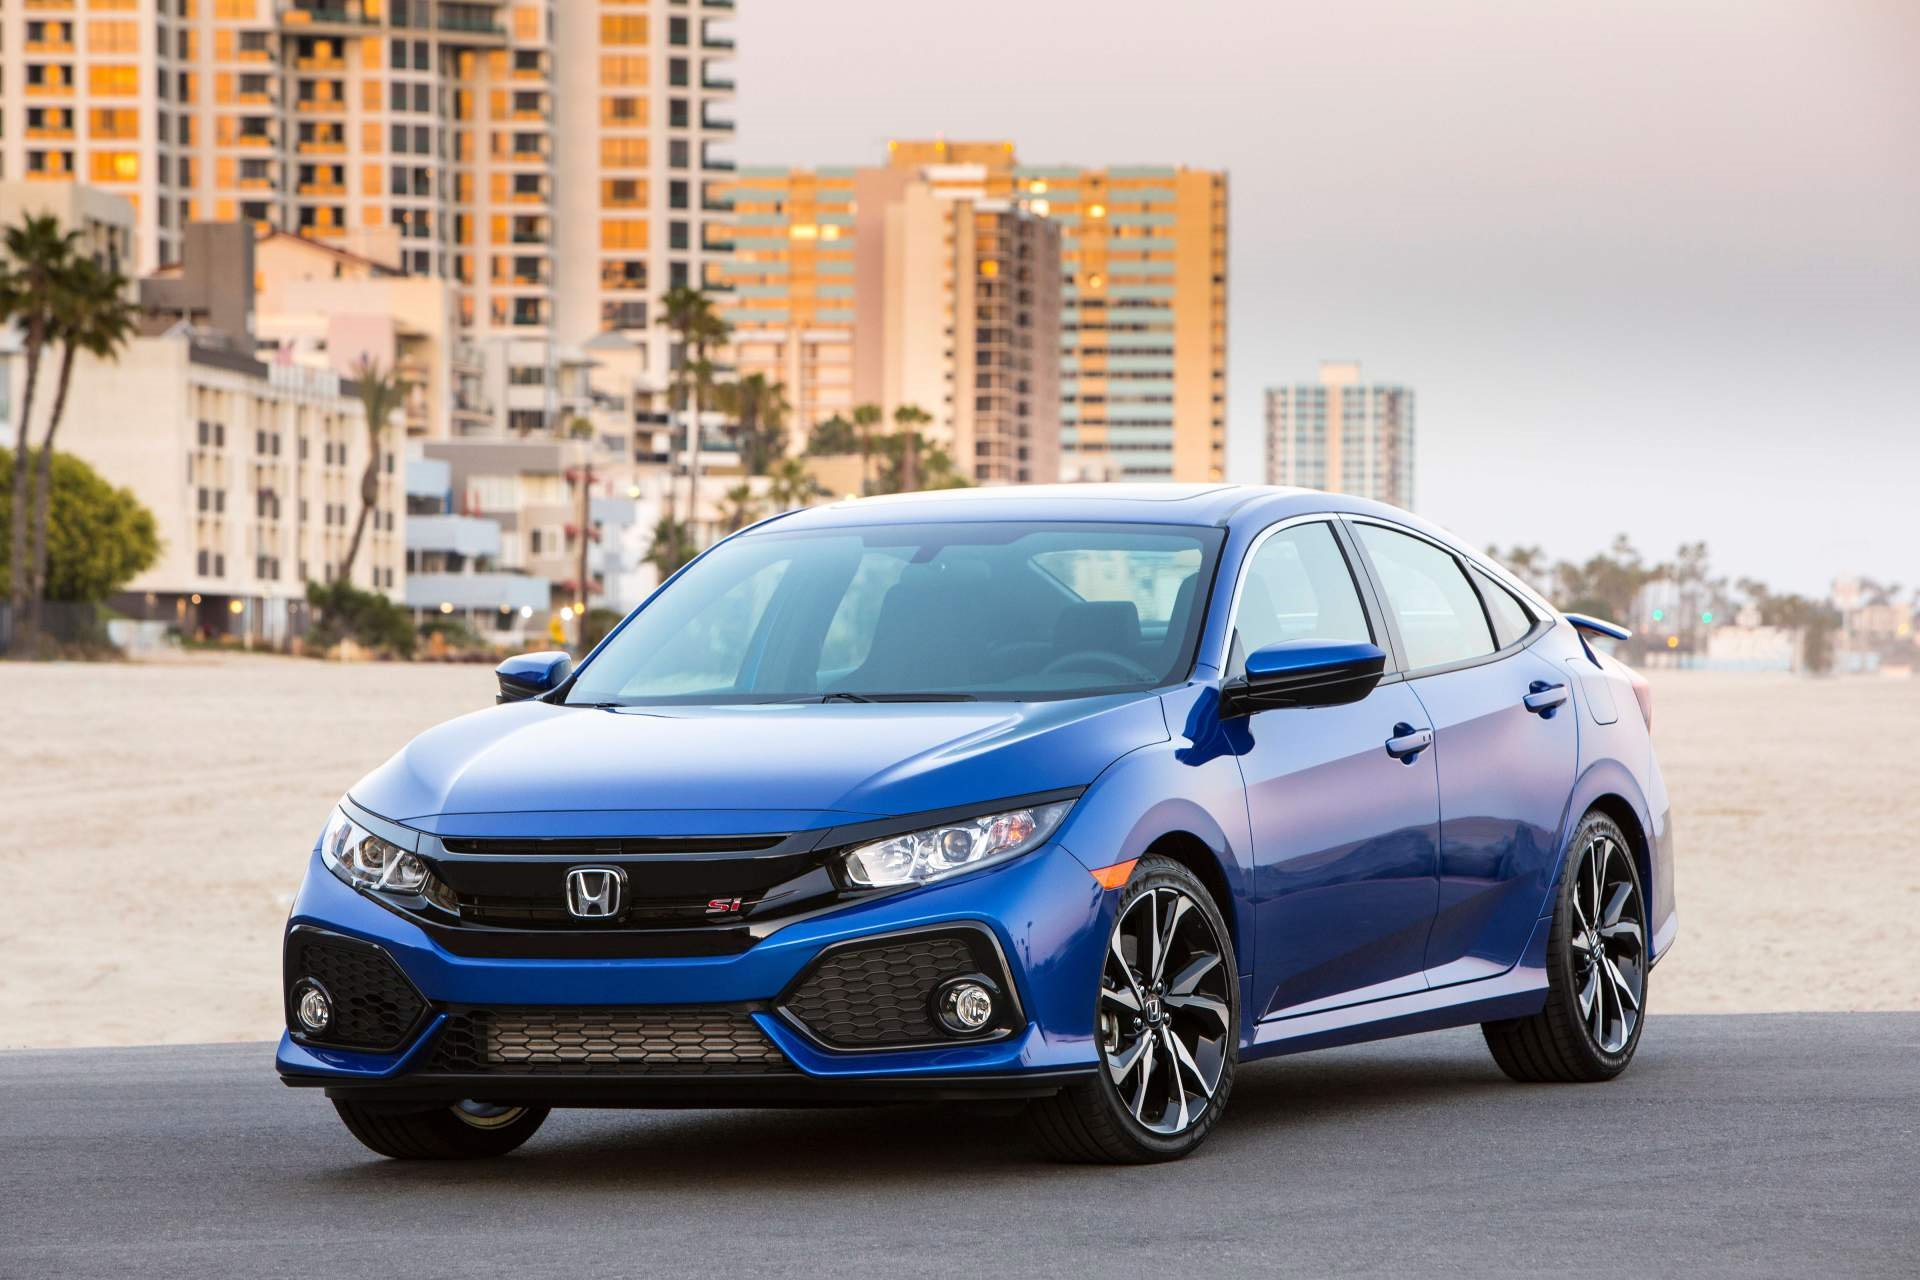 New 2019 Honda Civic LX Sedan for sale $20,250 at M and V Leasing in Brooklyn NY 11223 1